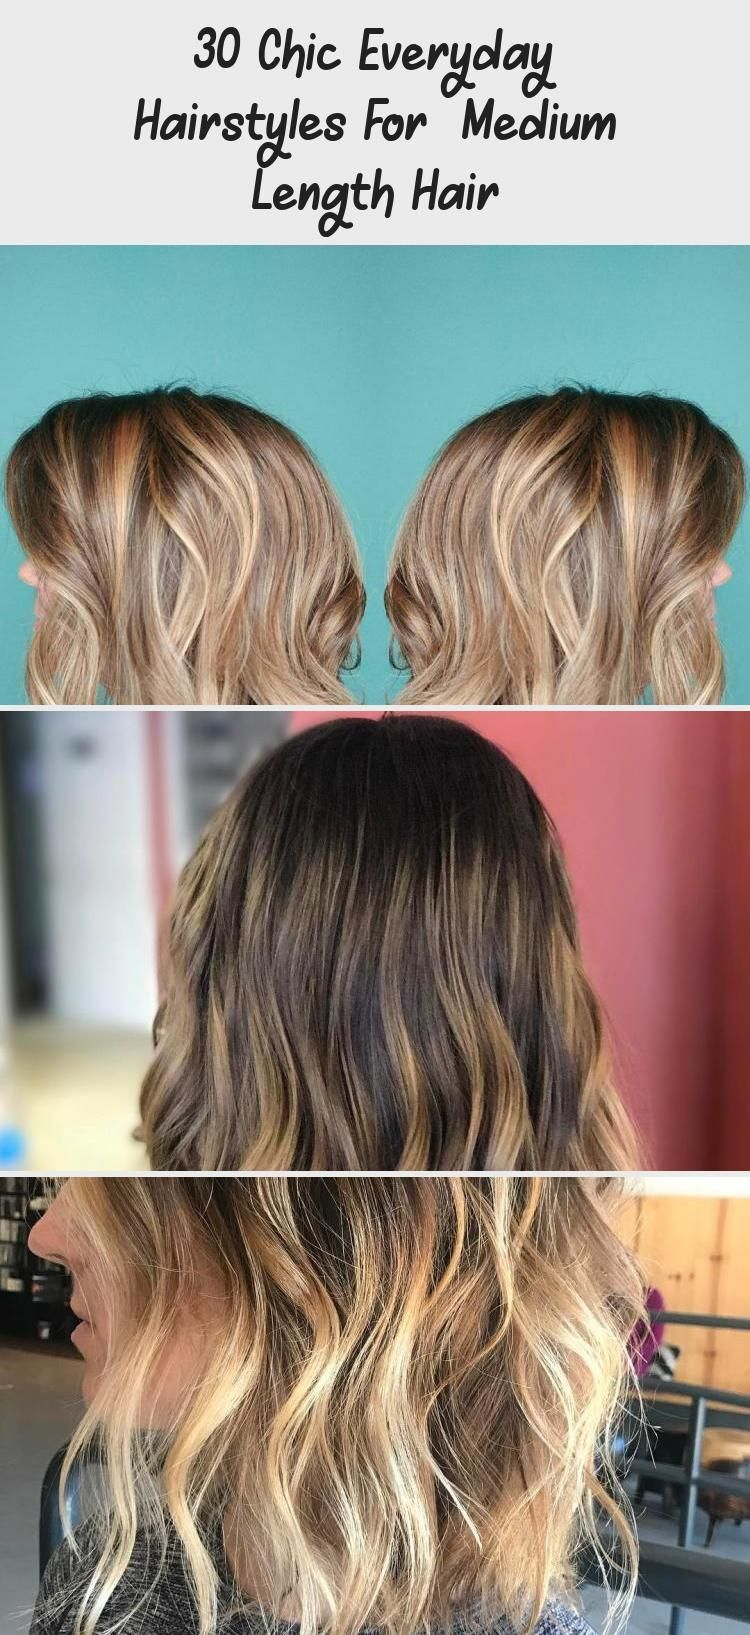 30 Chic Everyday Hairstyles for Medium Length Hair Medium length hair is simply ...,  #Chic #Everyday #everydayhairstylesbrunette #hair #Hairstyles #length #Medium #Simply